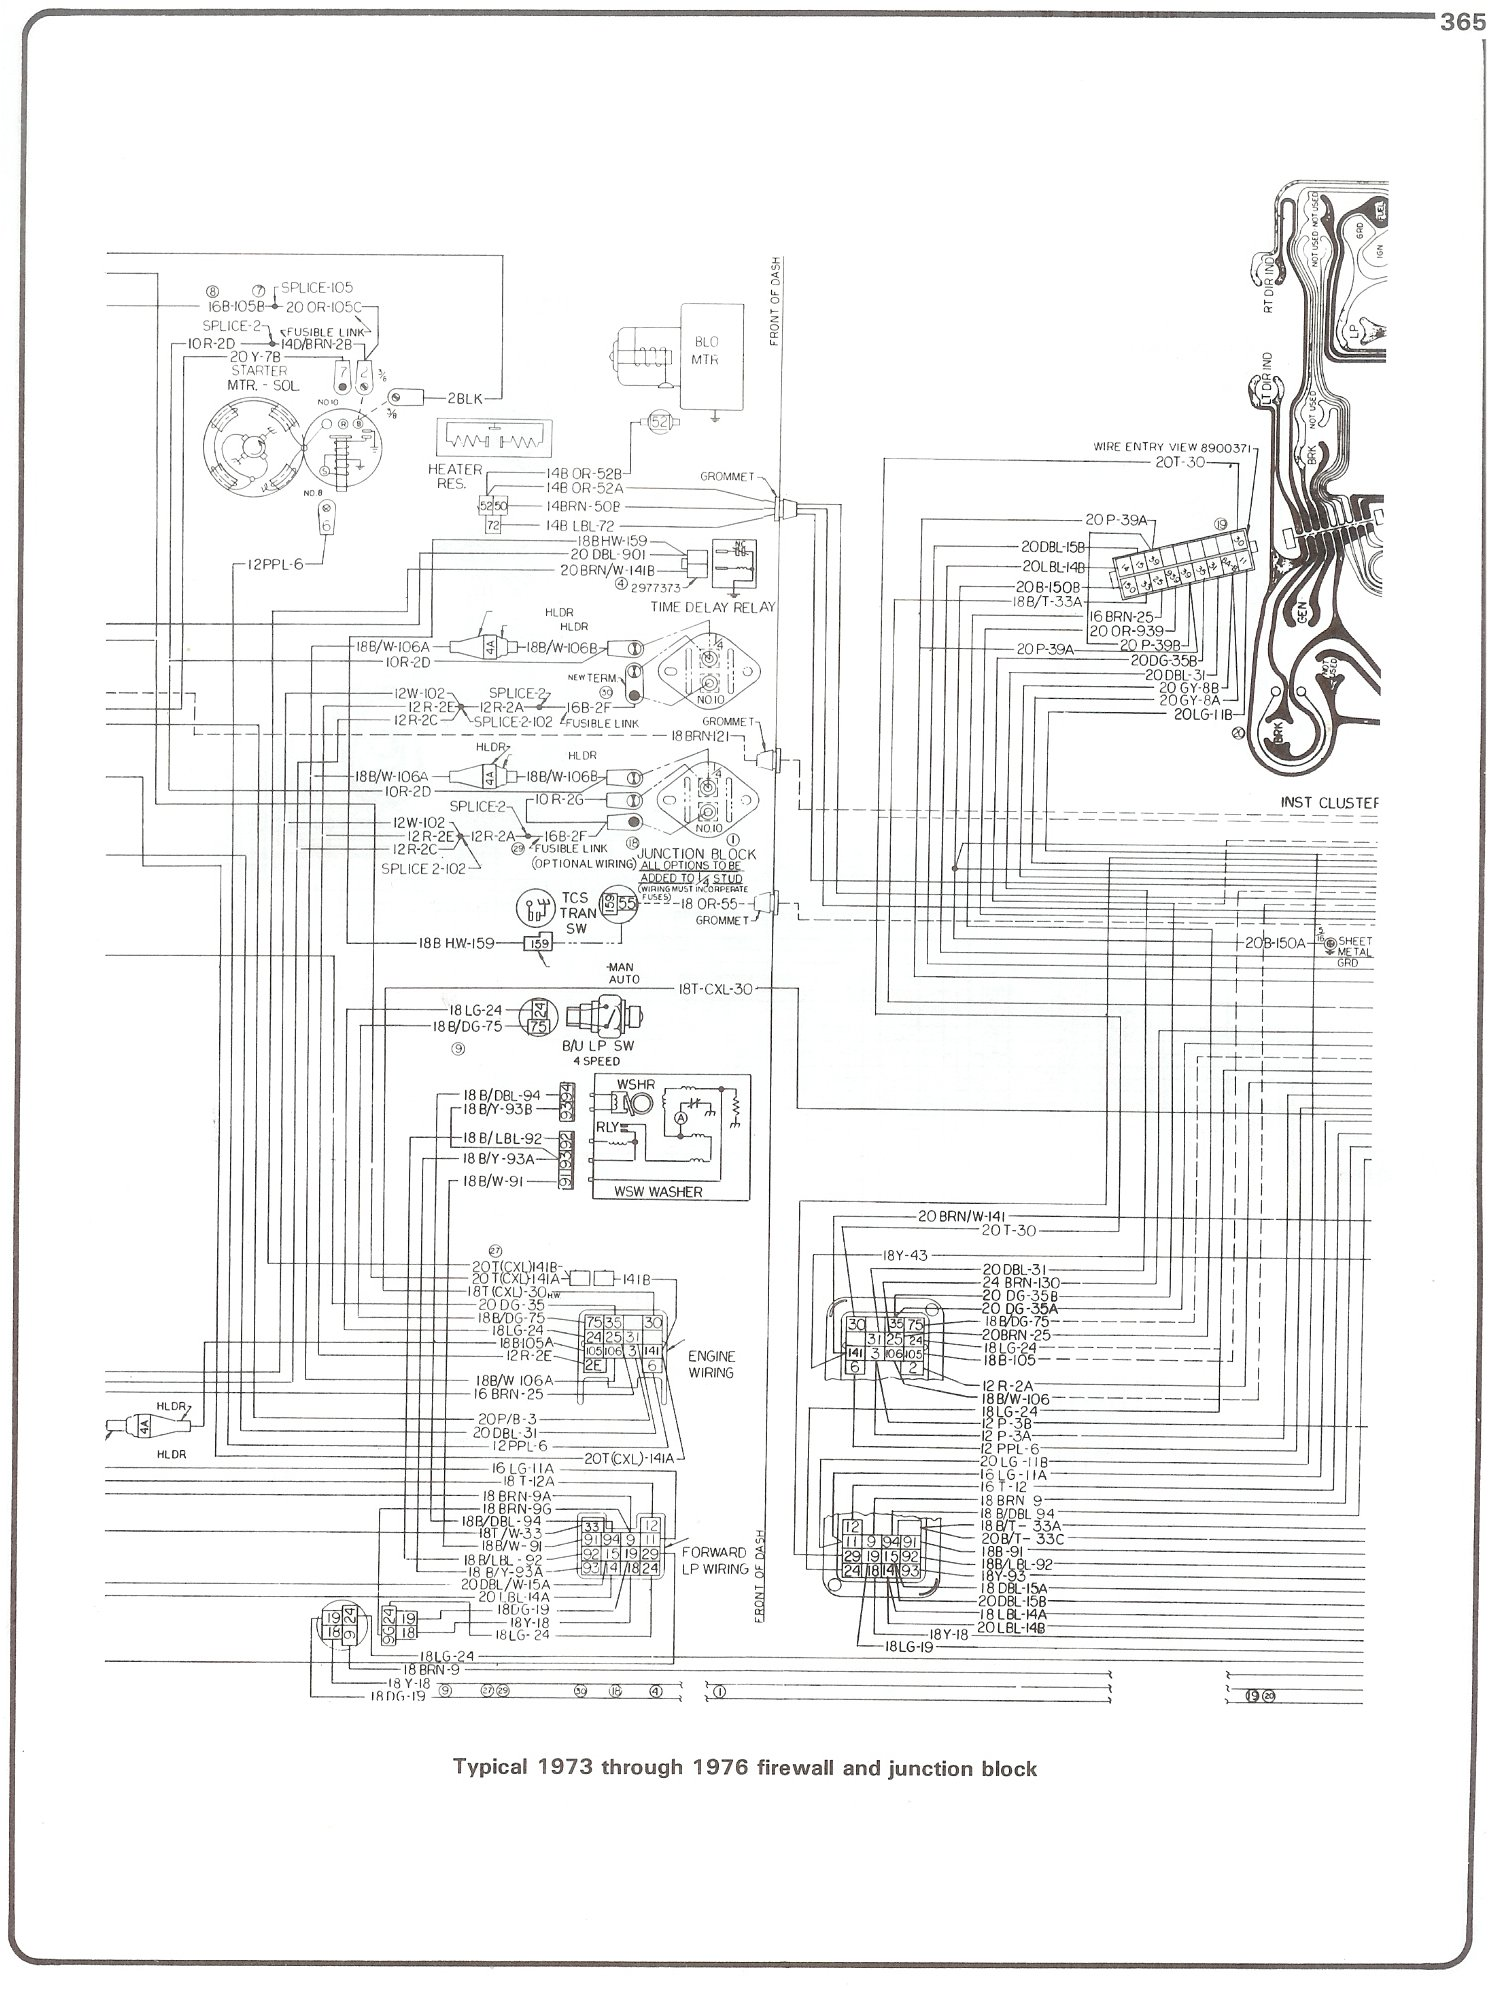 small resolution of 76 chevy engine wiring harness diagram wiring library 1982 chevy s10 durango 1982 chevy s10 firewall wiring diagram